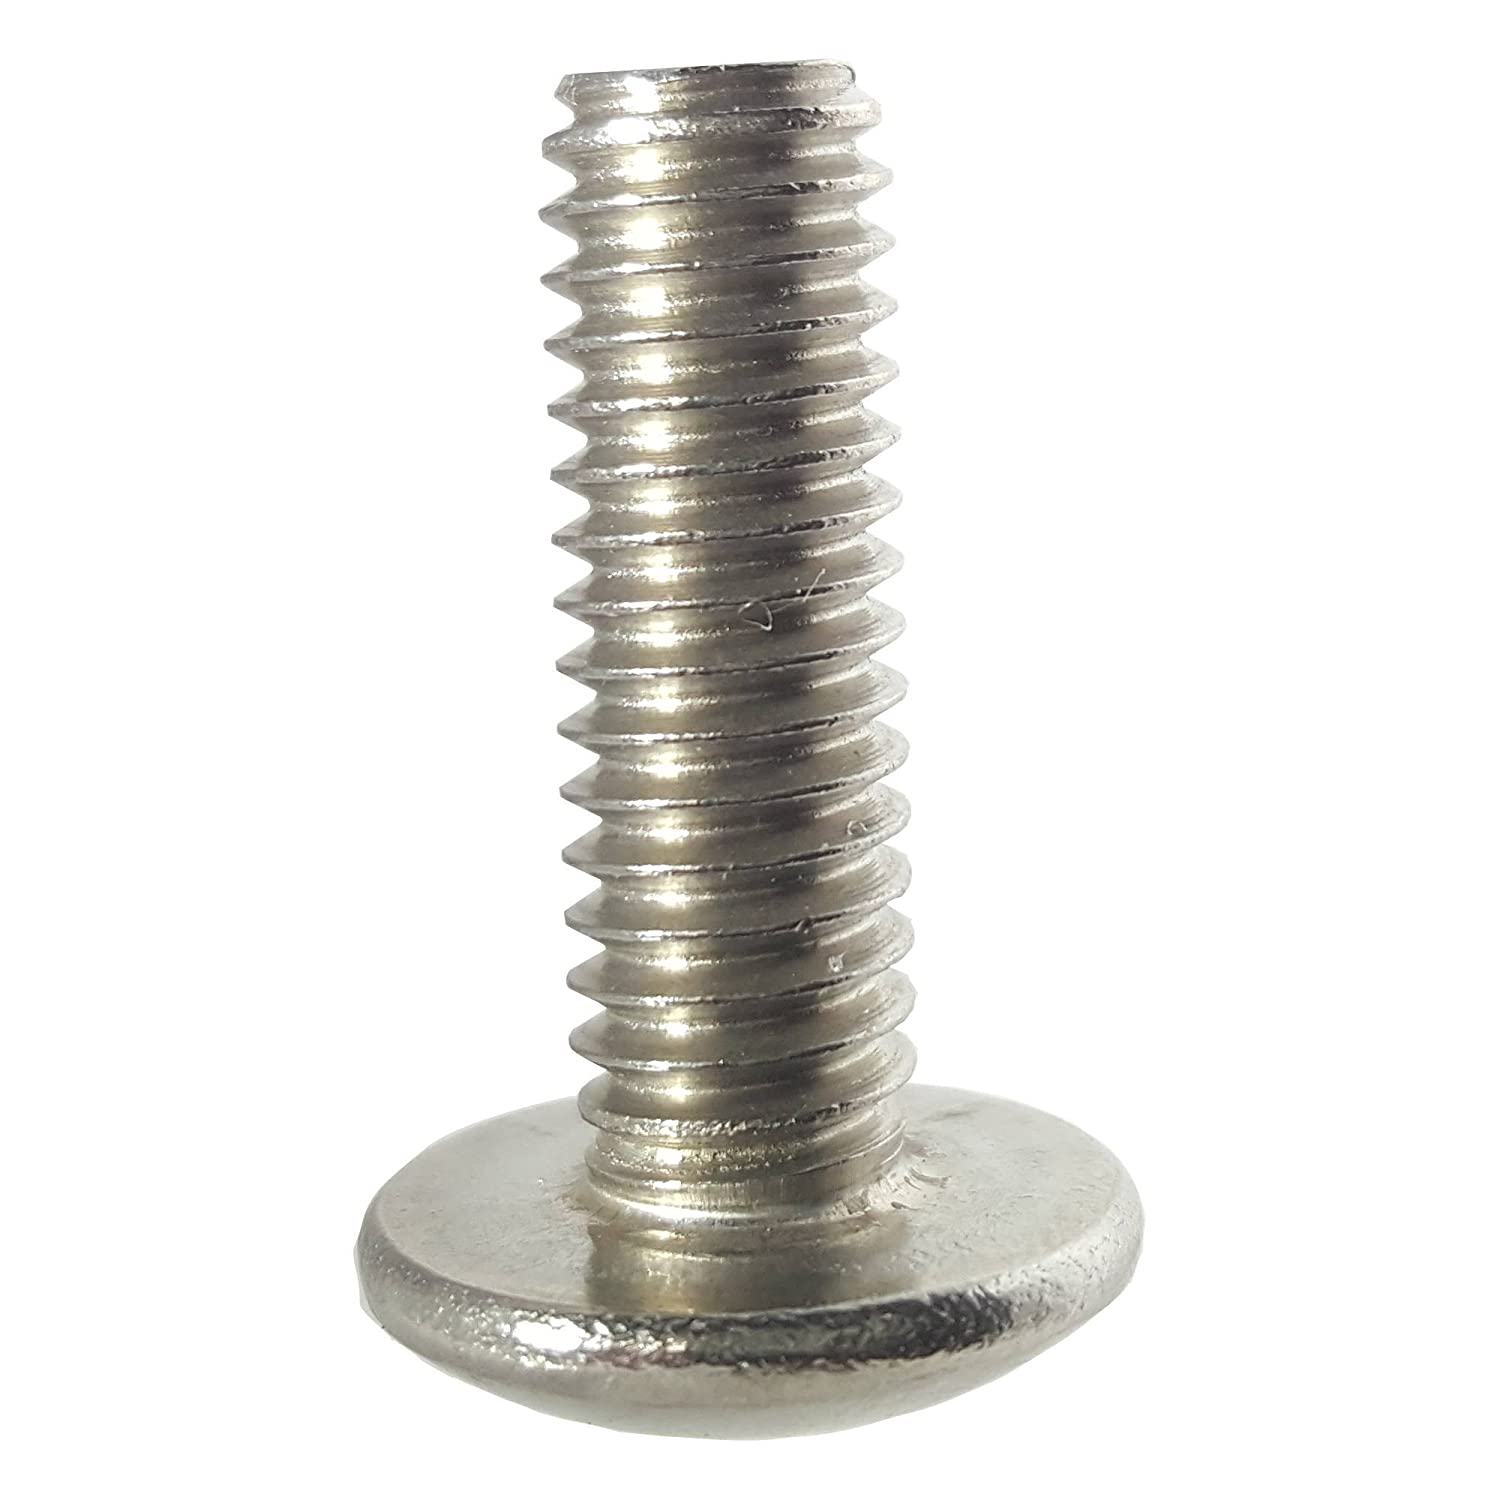 10-32 x 3//8 Truss Head Machine Screws Phillips Drive Stainless Steel 18-8 Full Thread Bright Finish Quantity 100 Pieces By Fastenere Lightning Stainless Machine Thread